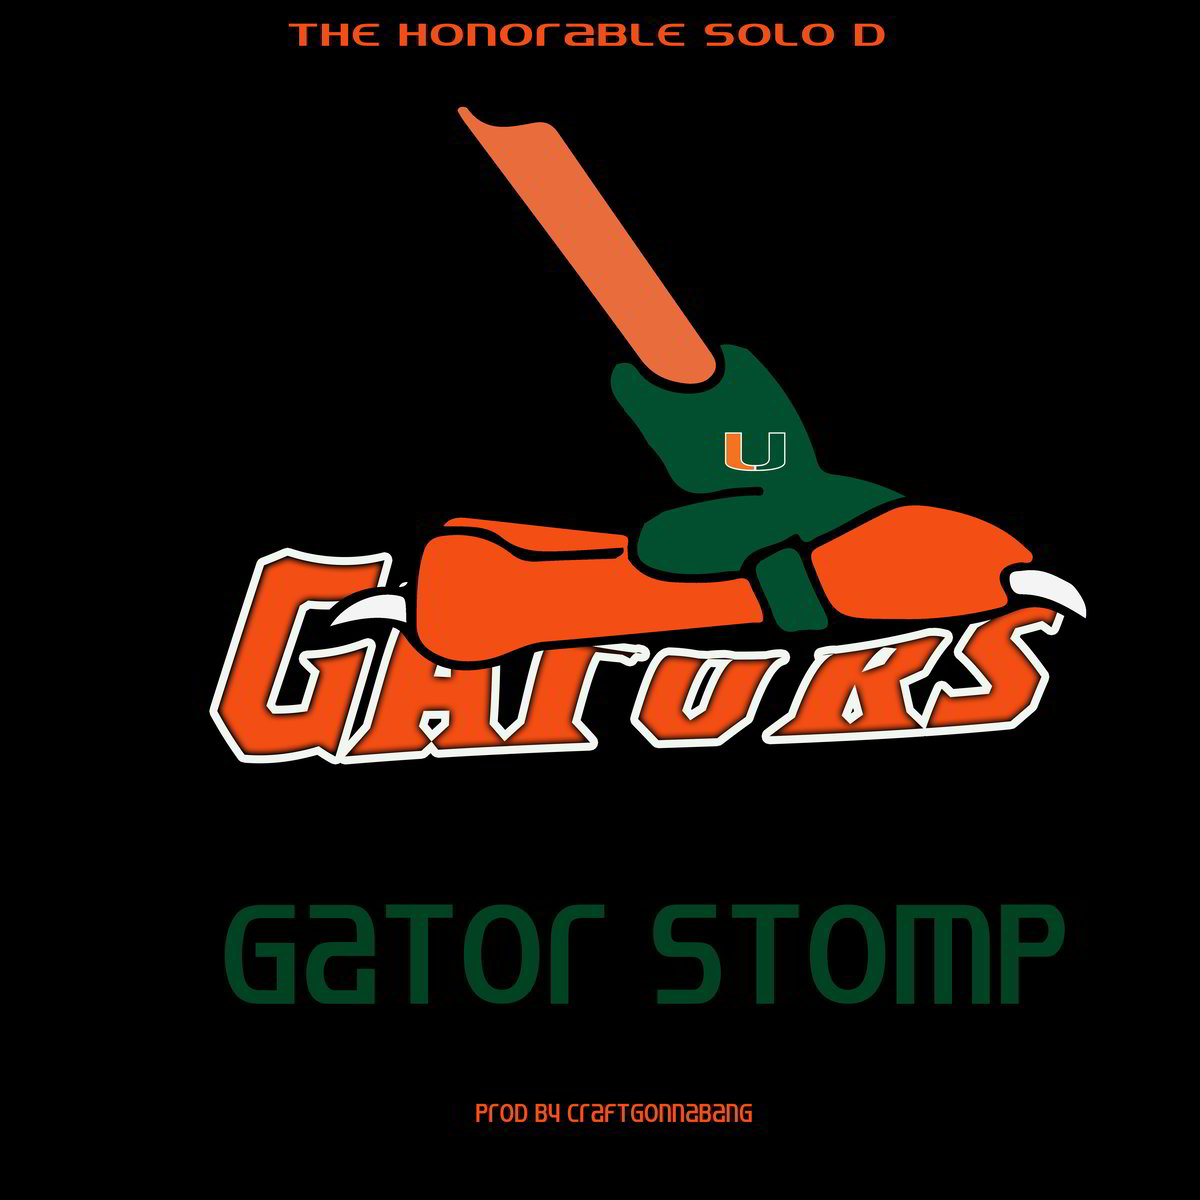 Gator Stomp (Single) Mp3